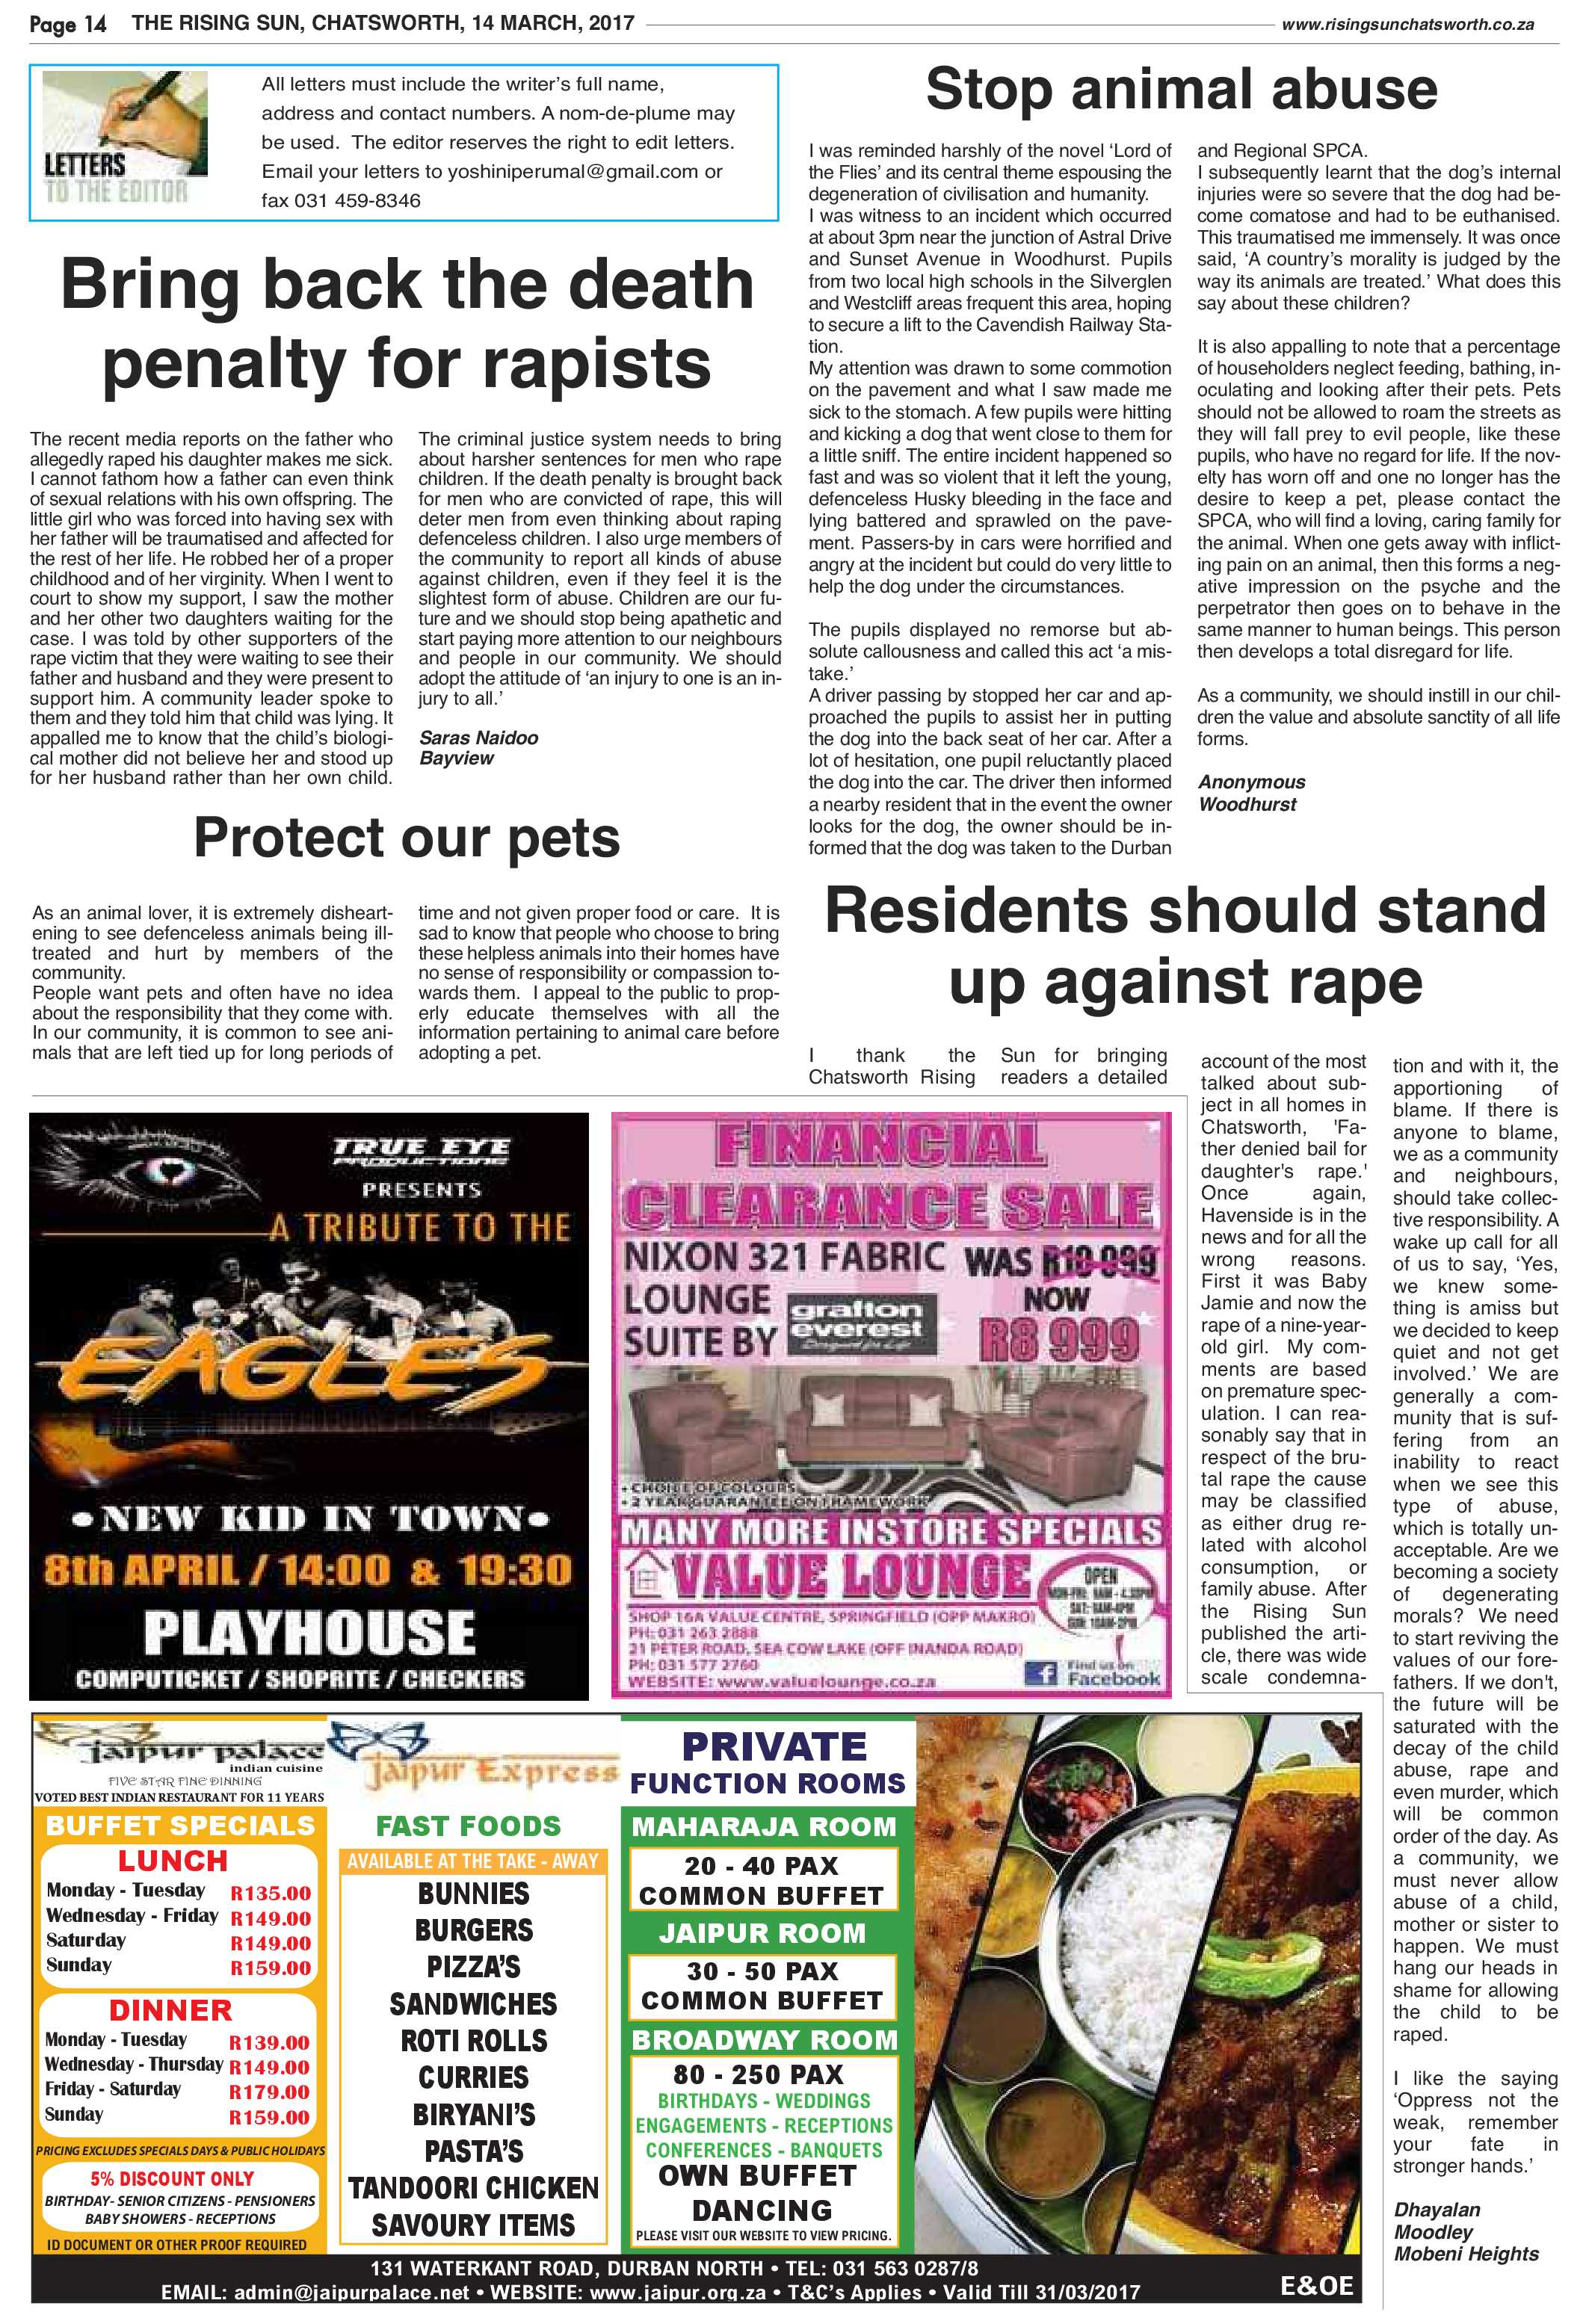 chatsworth-police-slammed-epapers-page-18